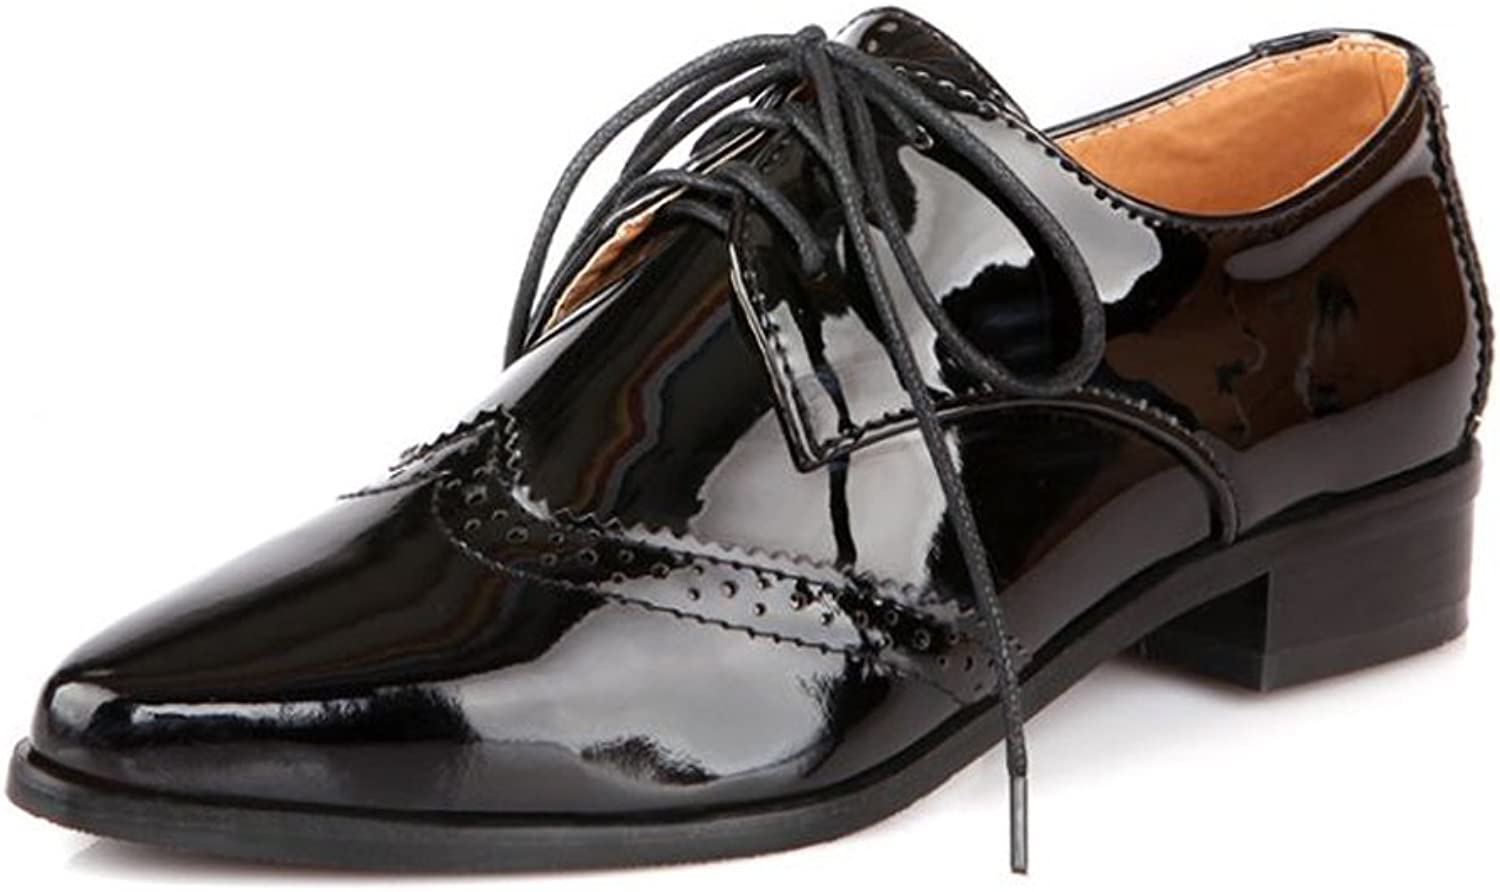 Lucksender Womens Pointed Toe Lace Up Low Heel Oxford shoes